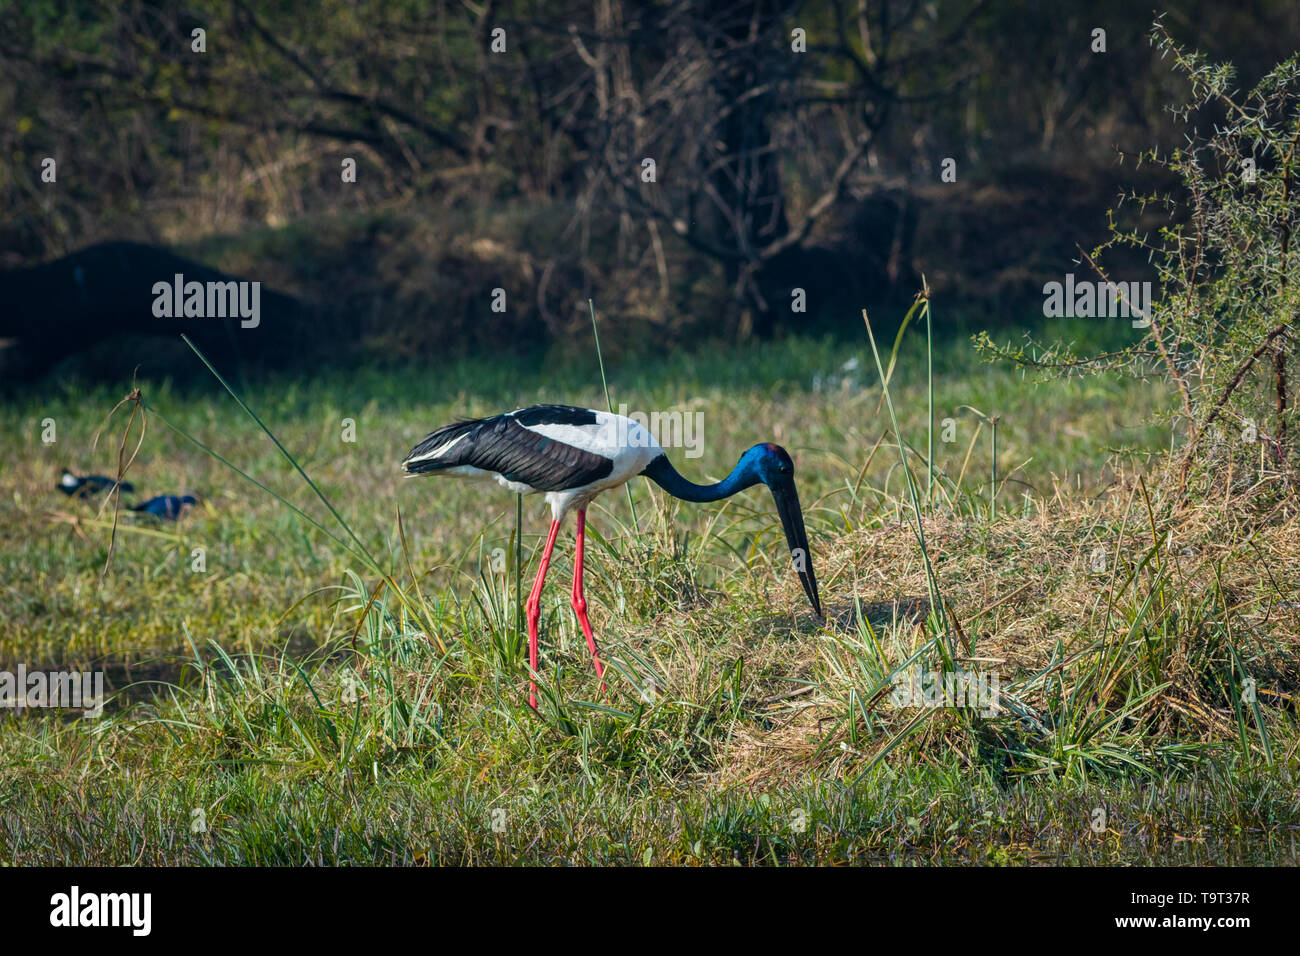 An alert male Black-necked stork searching for bird to kill in a winter morning at wetland of keoladeo national park, bharatpur, india - Stock Image